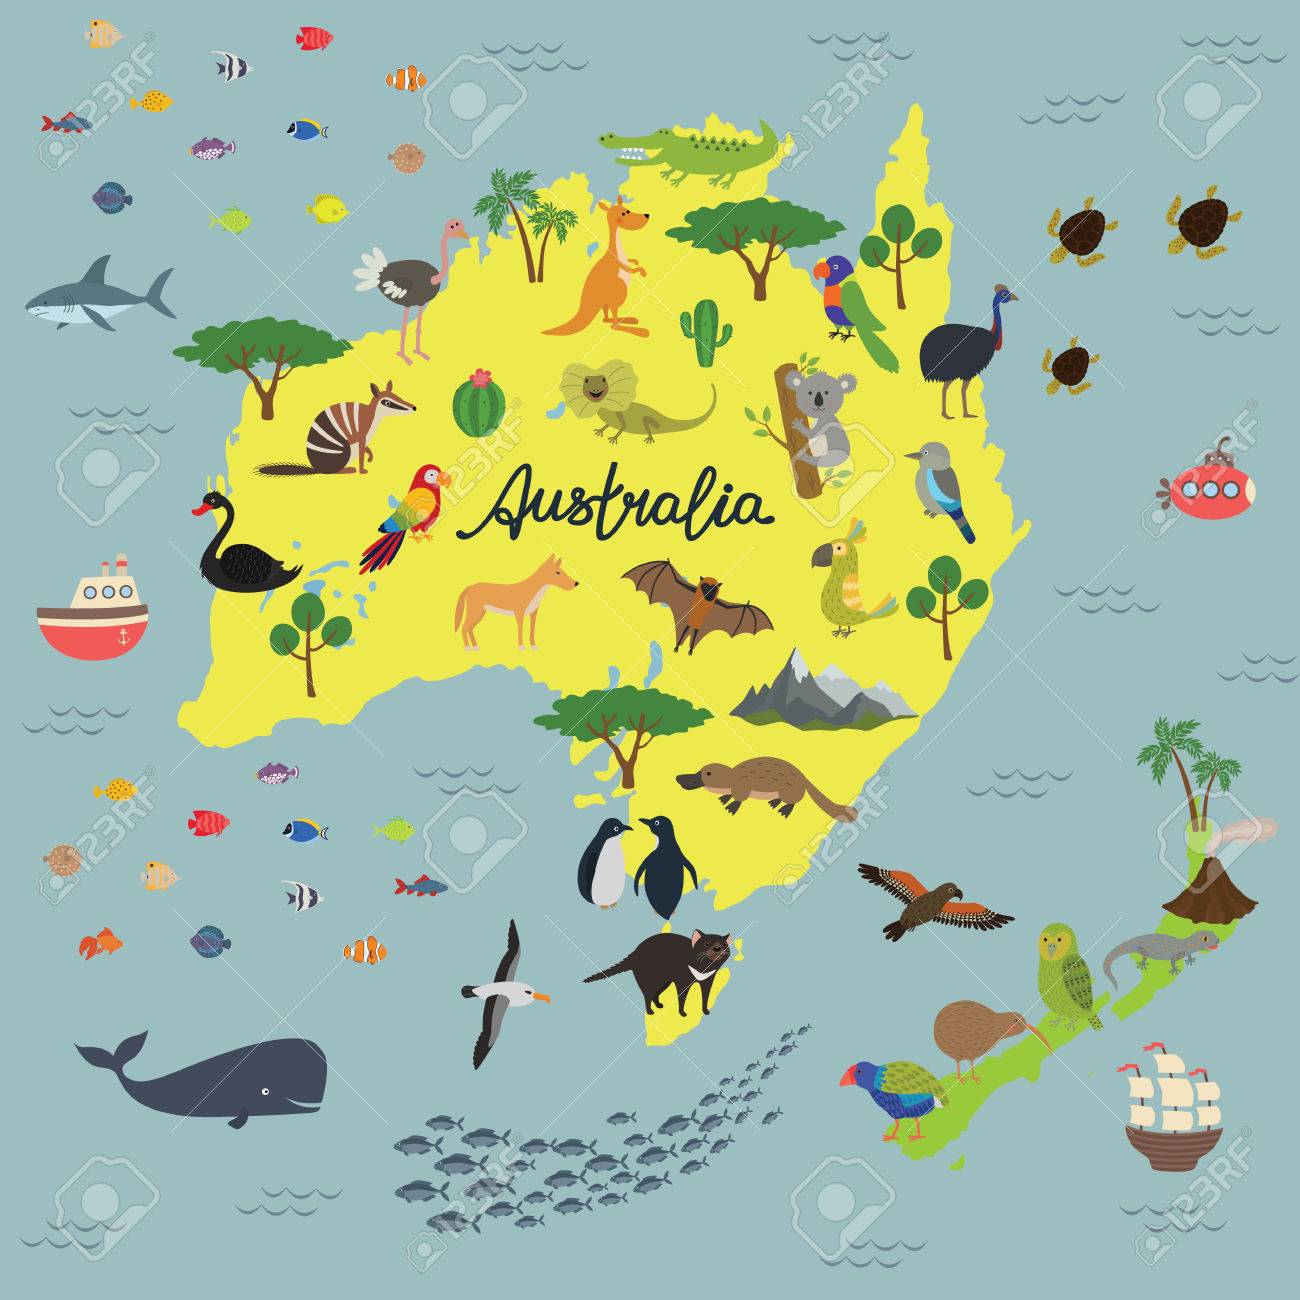 Australia To New Zealand Map.Map Of Animal Kingdom Of Australia And New Zealand Royalty Free